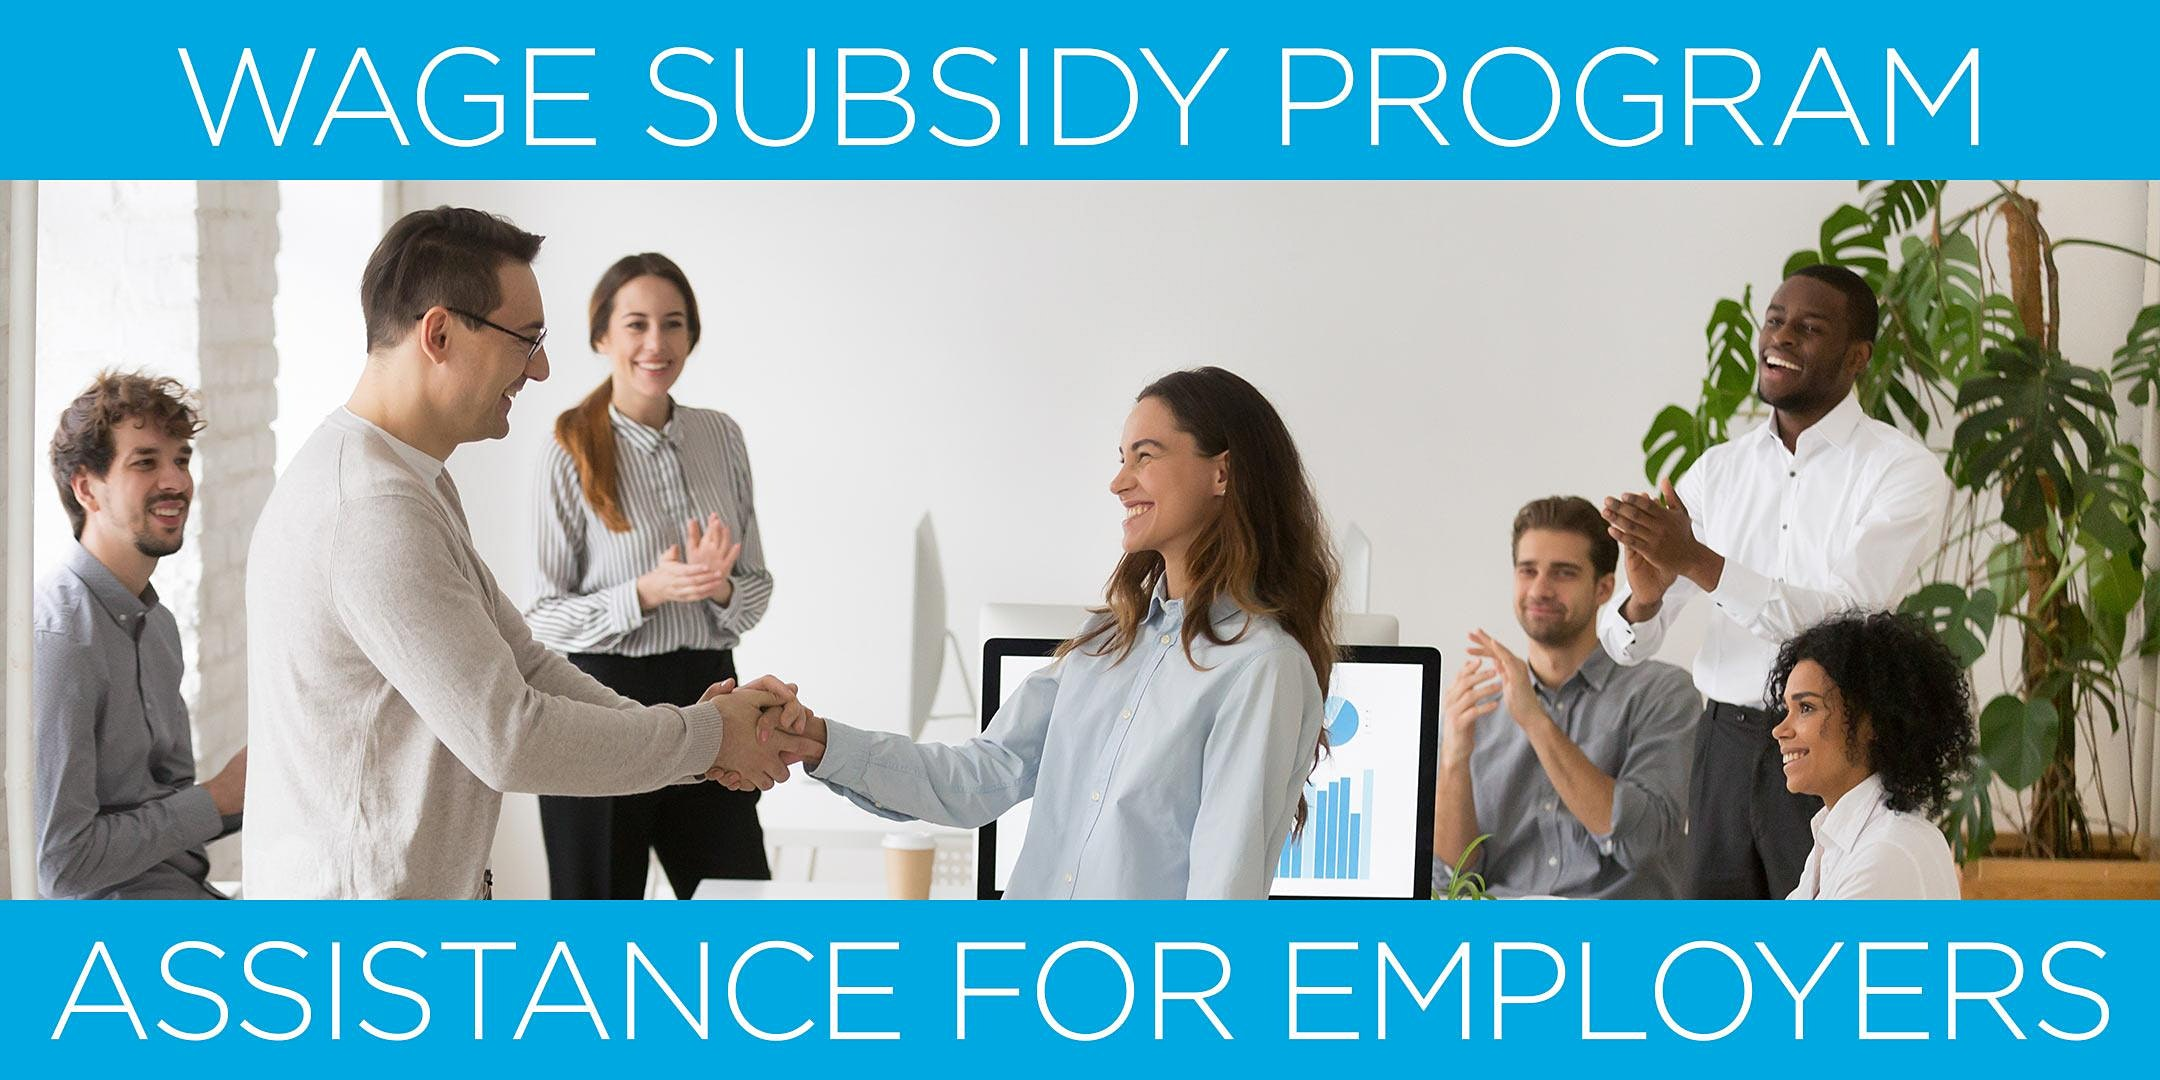 Wage Subsidy Program Assistance for Employers